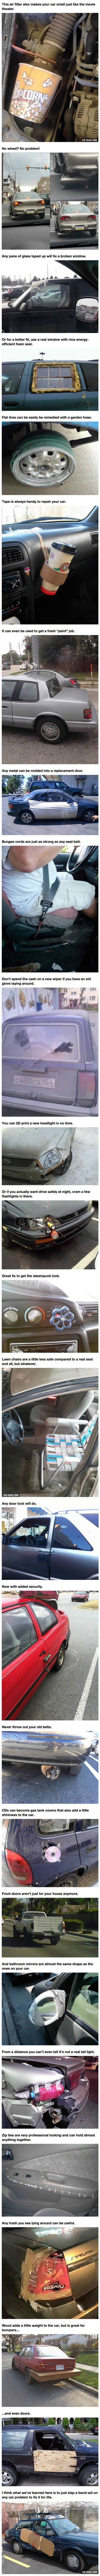 25 Ingenious Car Repairs That Are Too Creative For Their Own Good    if it looks stupid but works it aint stupid ahahahaahahahaaha